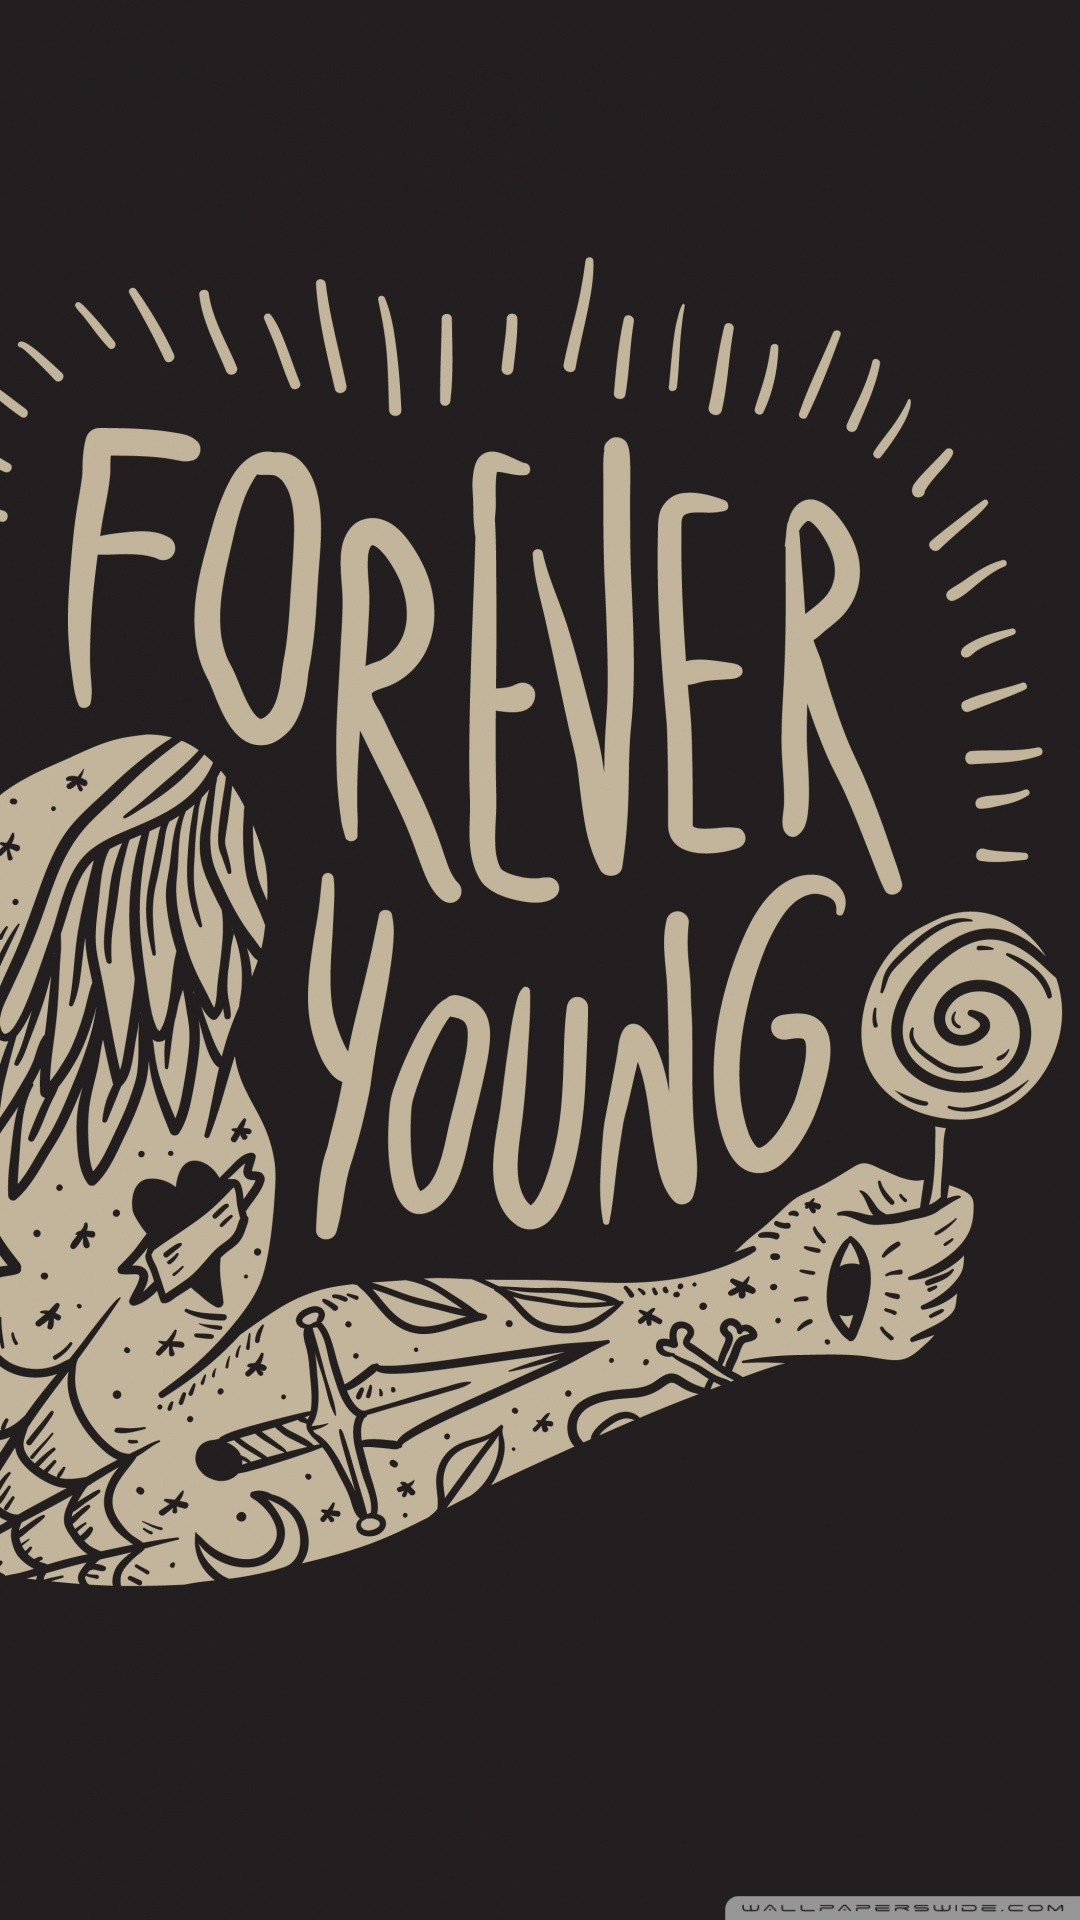 Free Forever Young phone wallpaper by pookiebear112